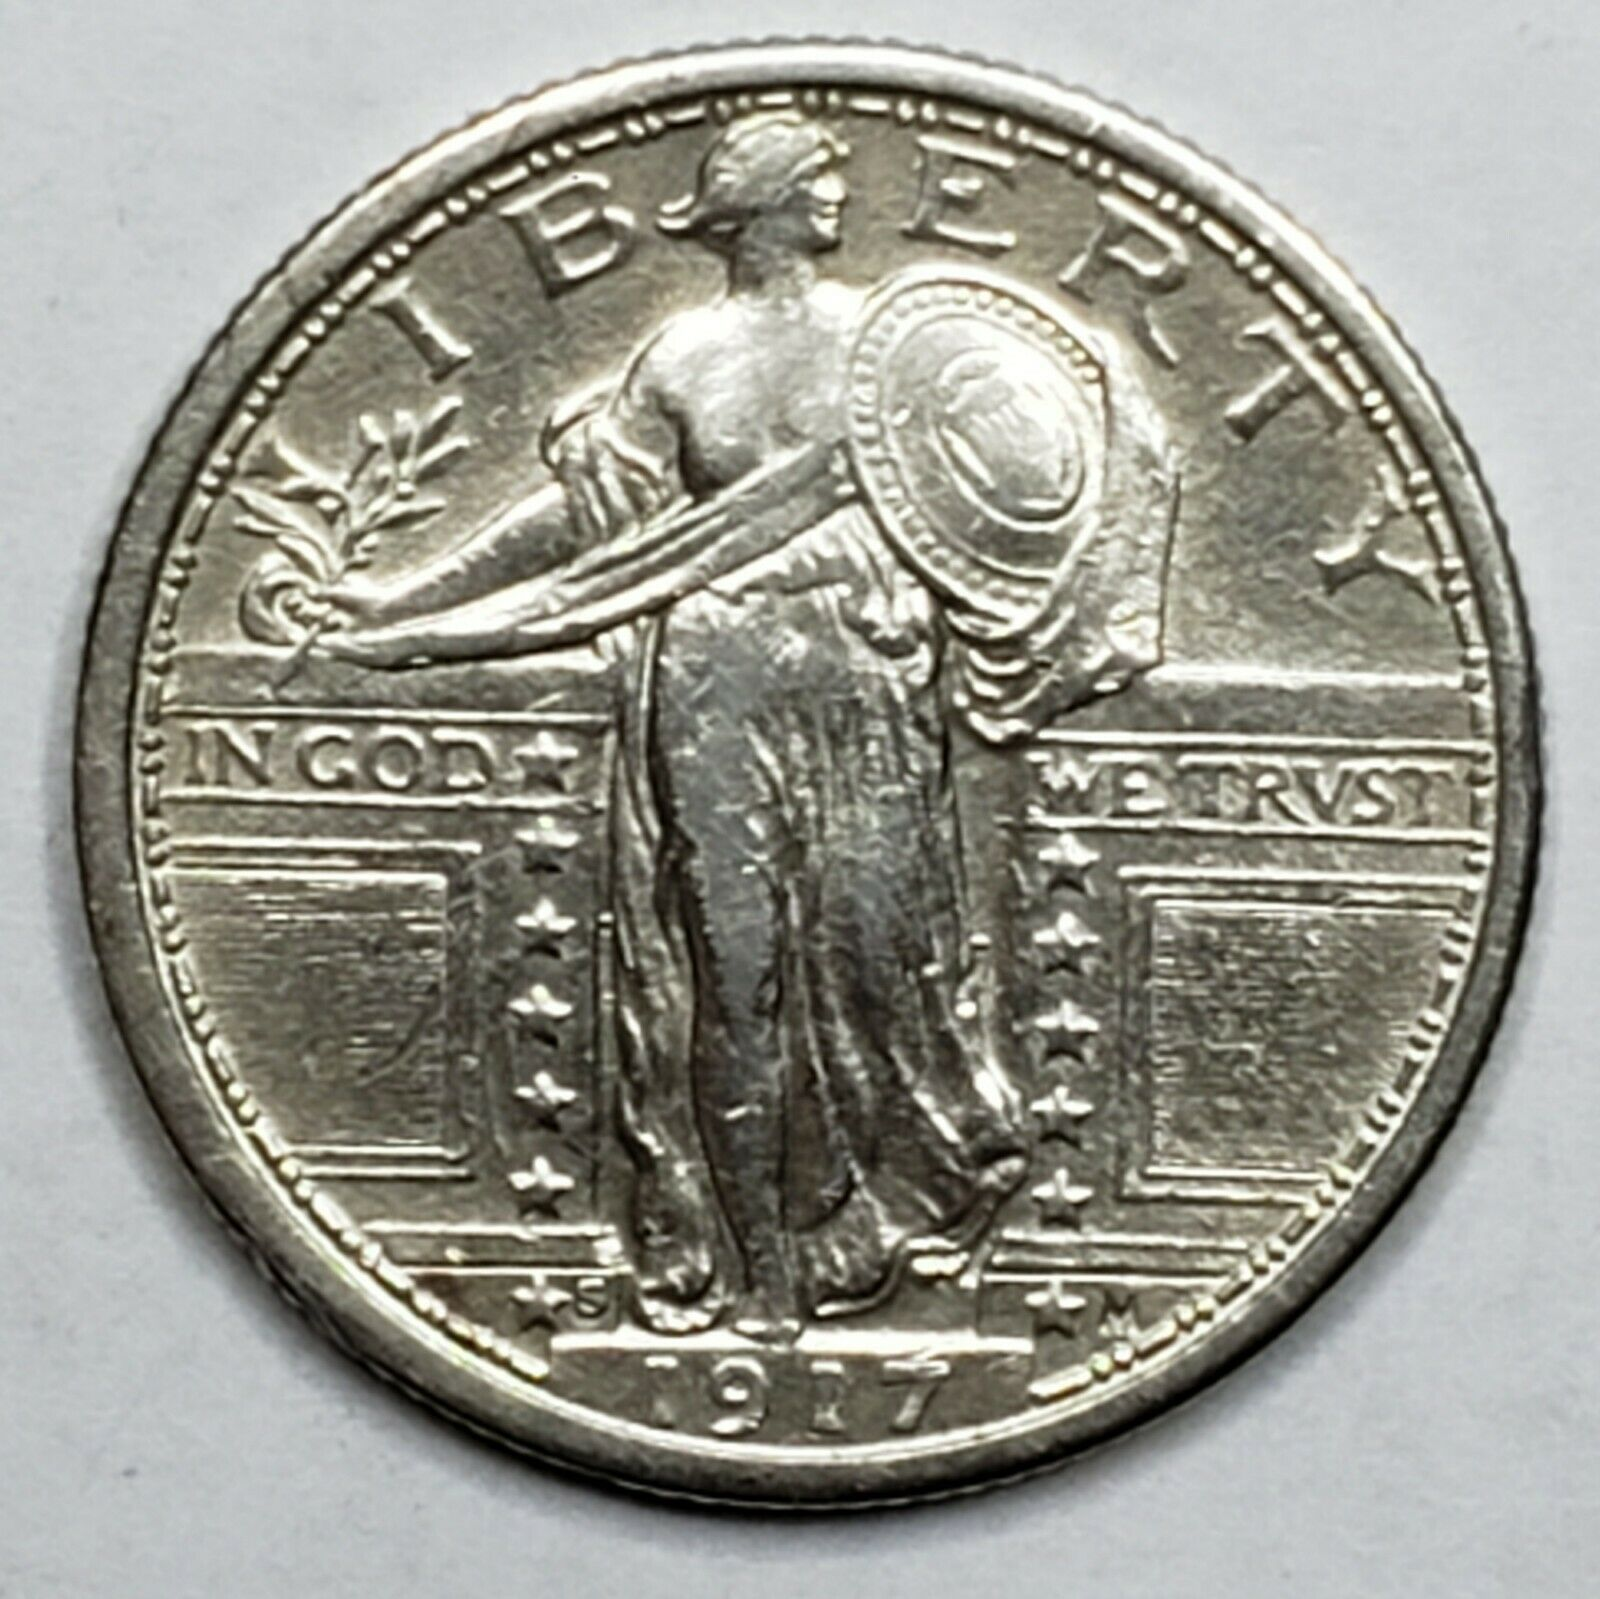 1917S Standing Liberty Silver Quarter Coin Type 1 Lot 519-66